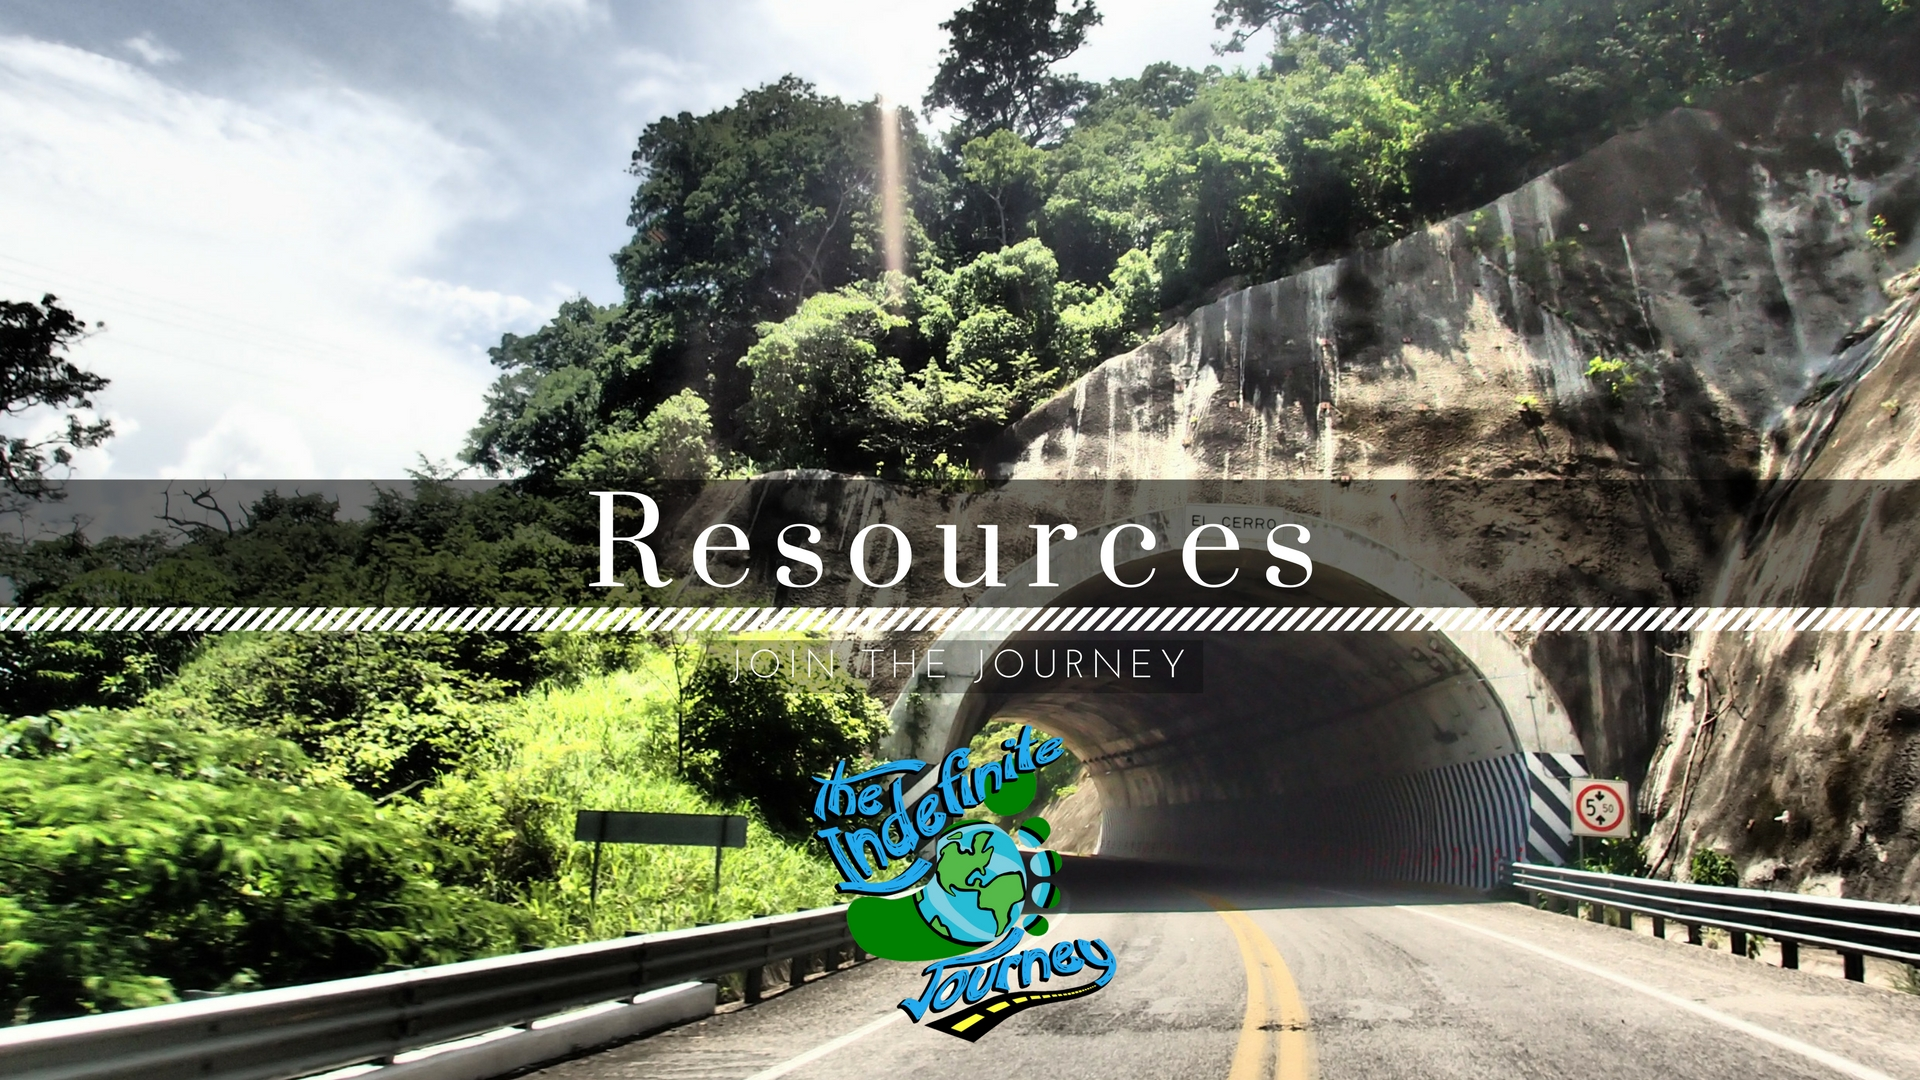 Travel Resources - The Indefinite Journey